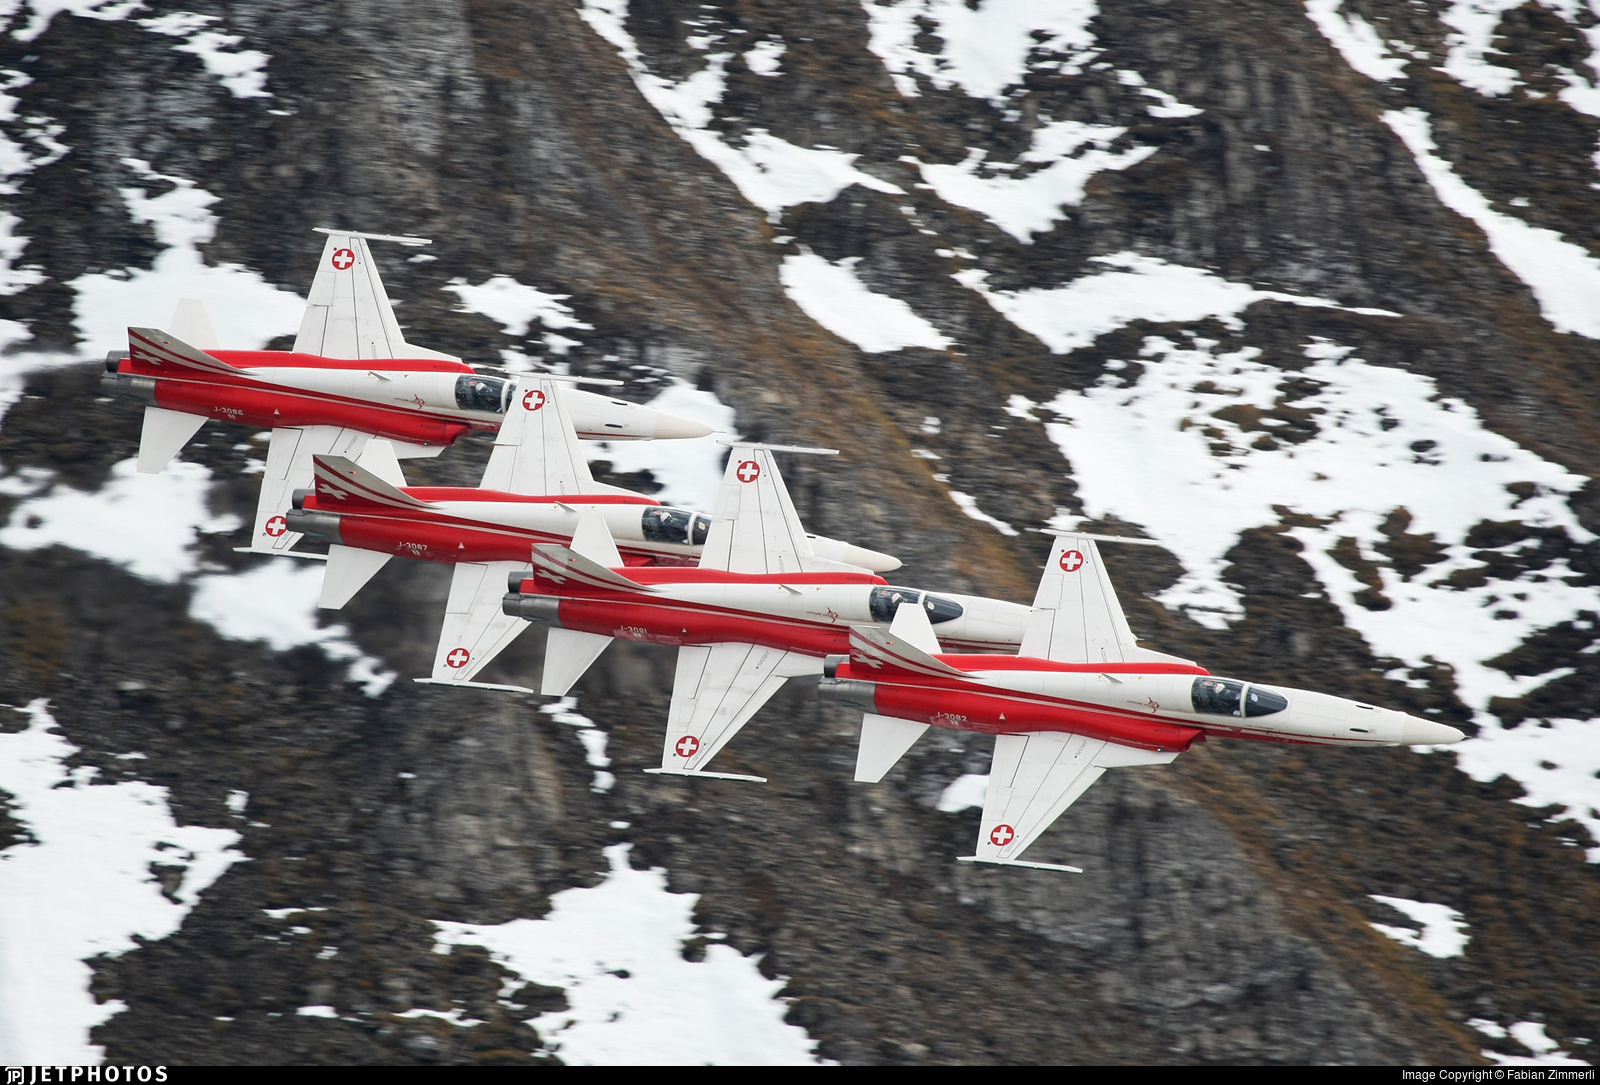 J-3082 - Northrop F-5E Tiger II - Switzerland - Air Force